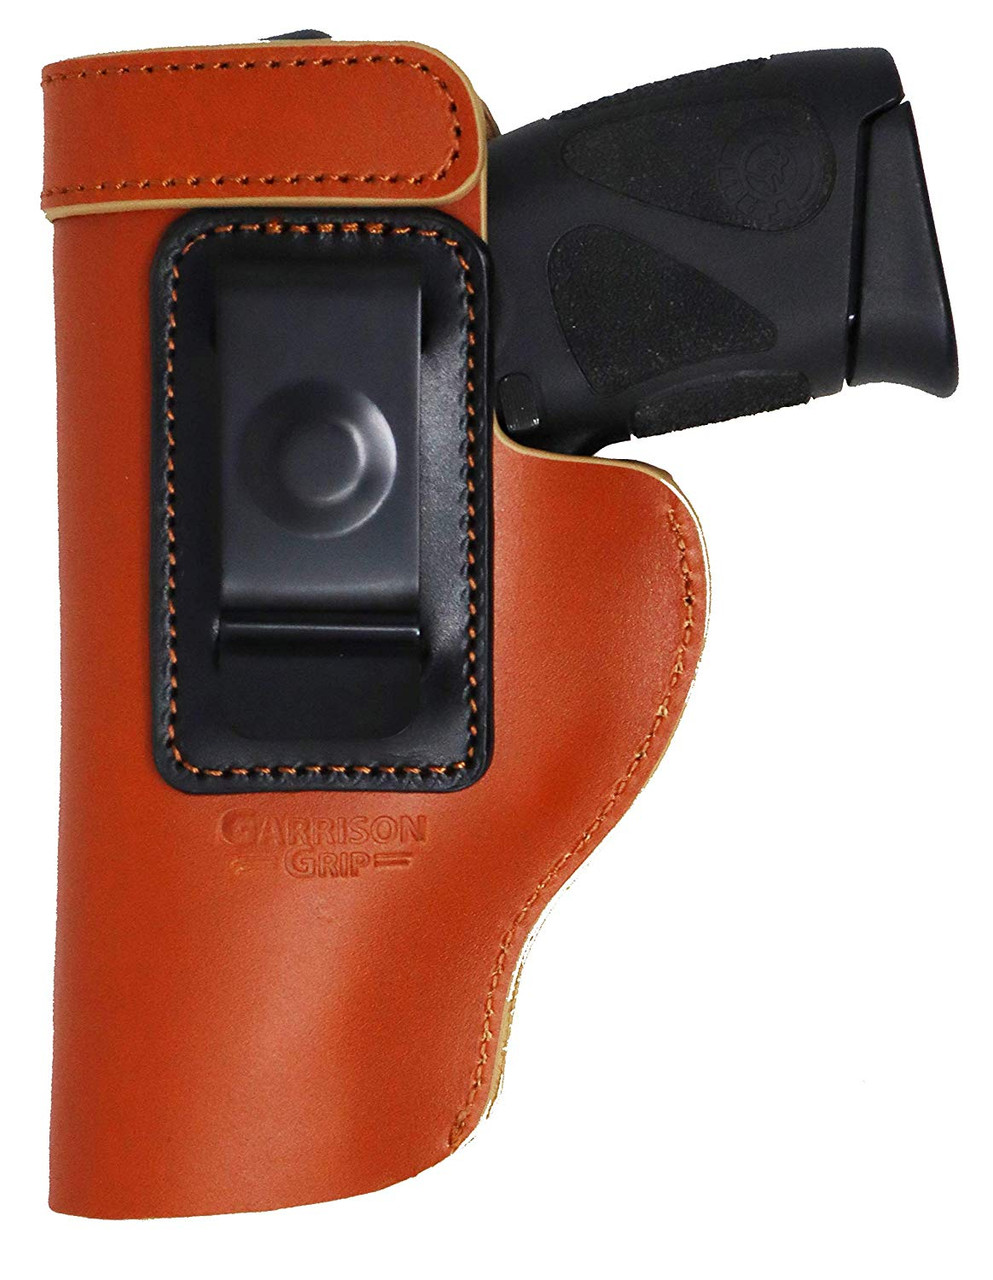 Garrison Grip Premium Brazilian Leather IWB Inside Waistband Holster Fits The 1911 A1 and Clones.